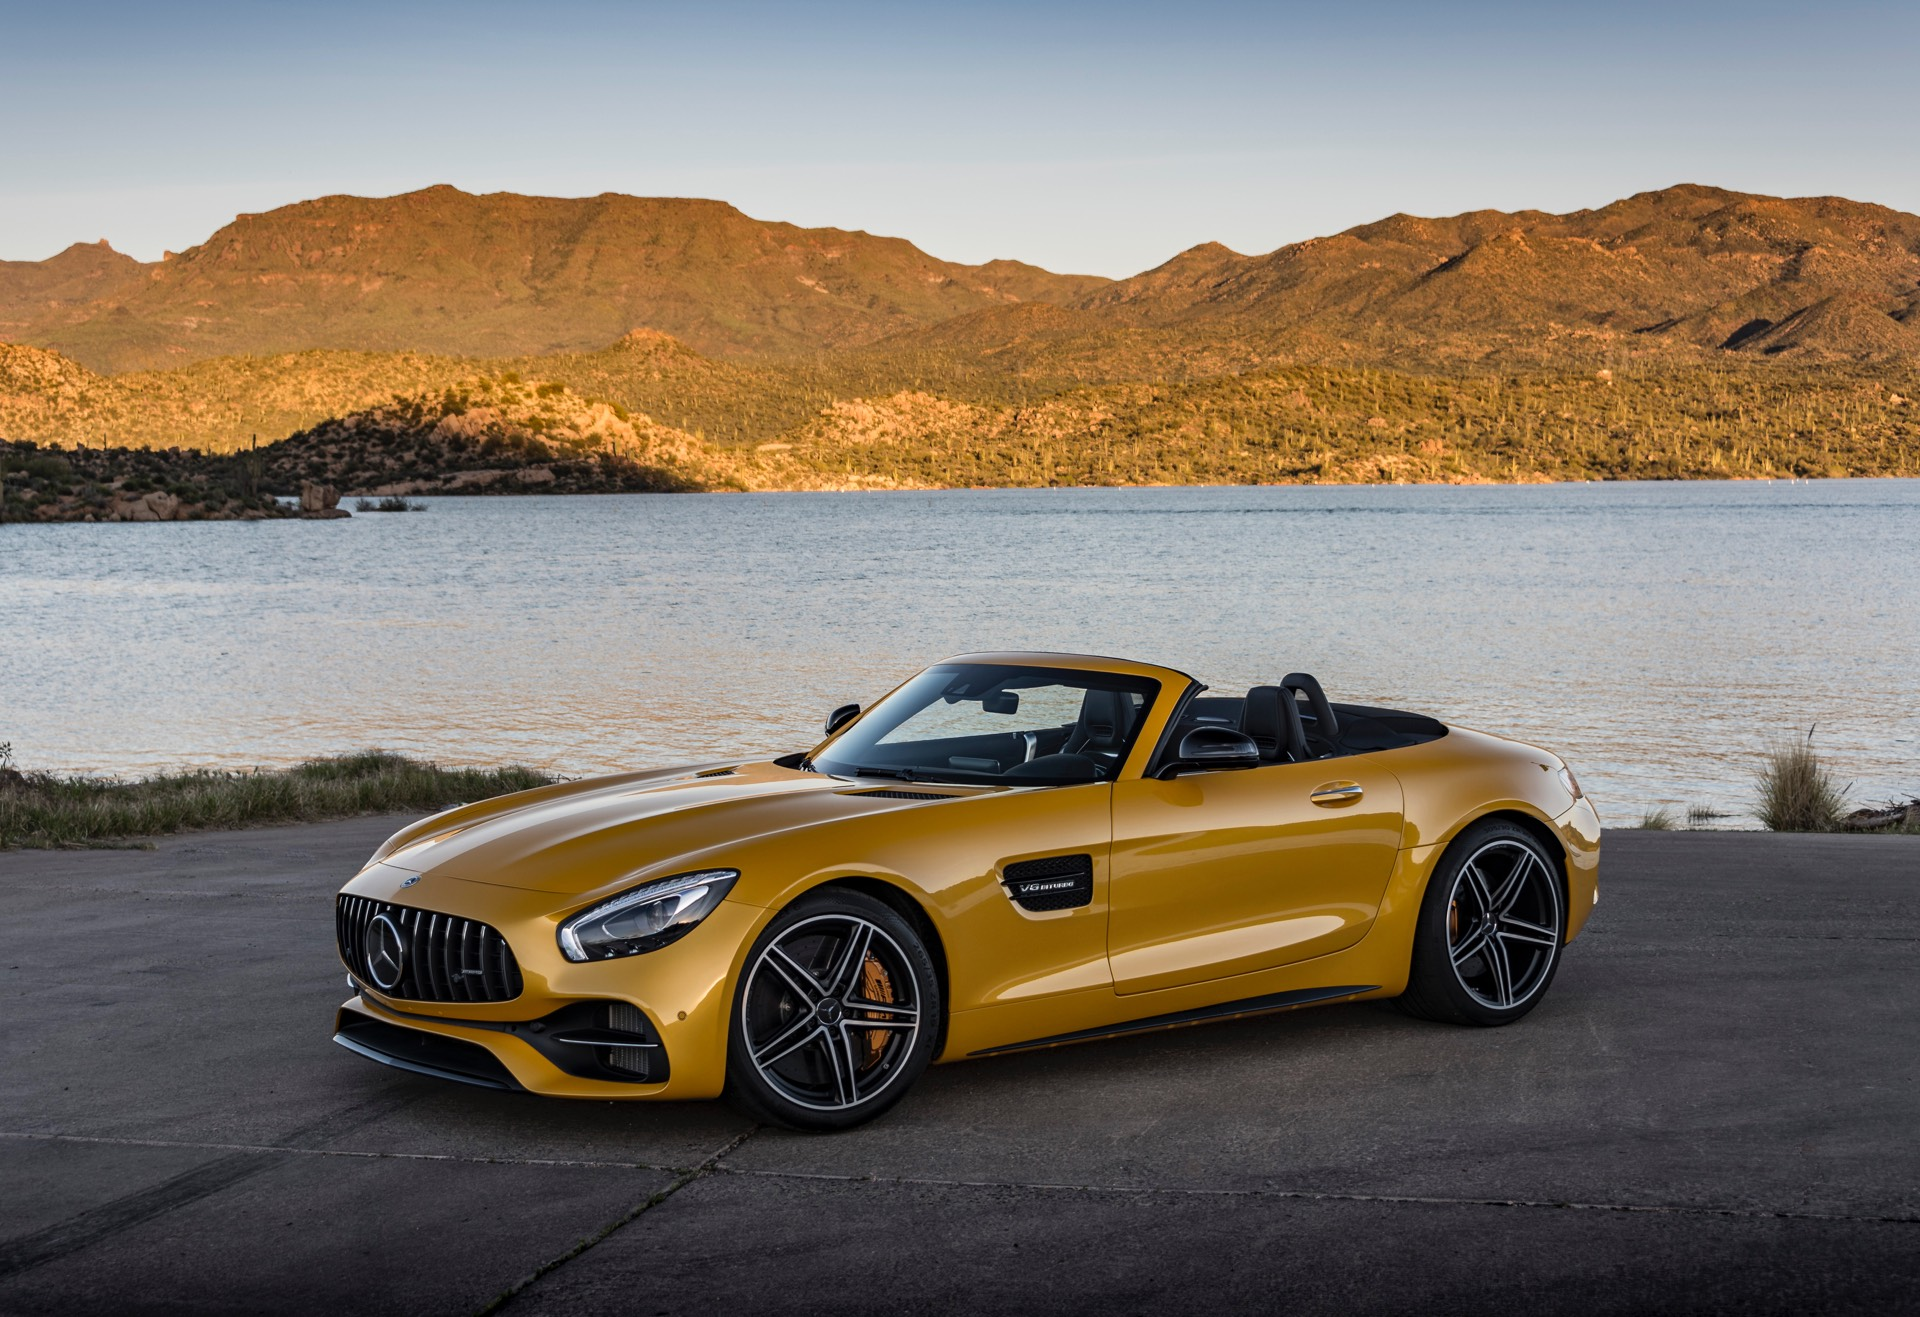 Amg Gt Mercedes Amg Gt C Roadster Review Gtspirit